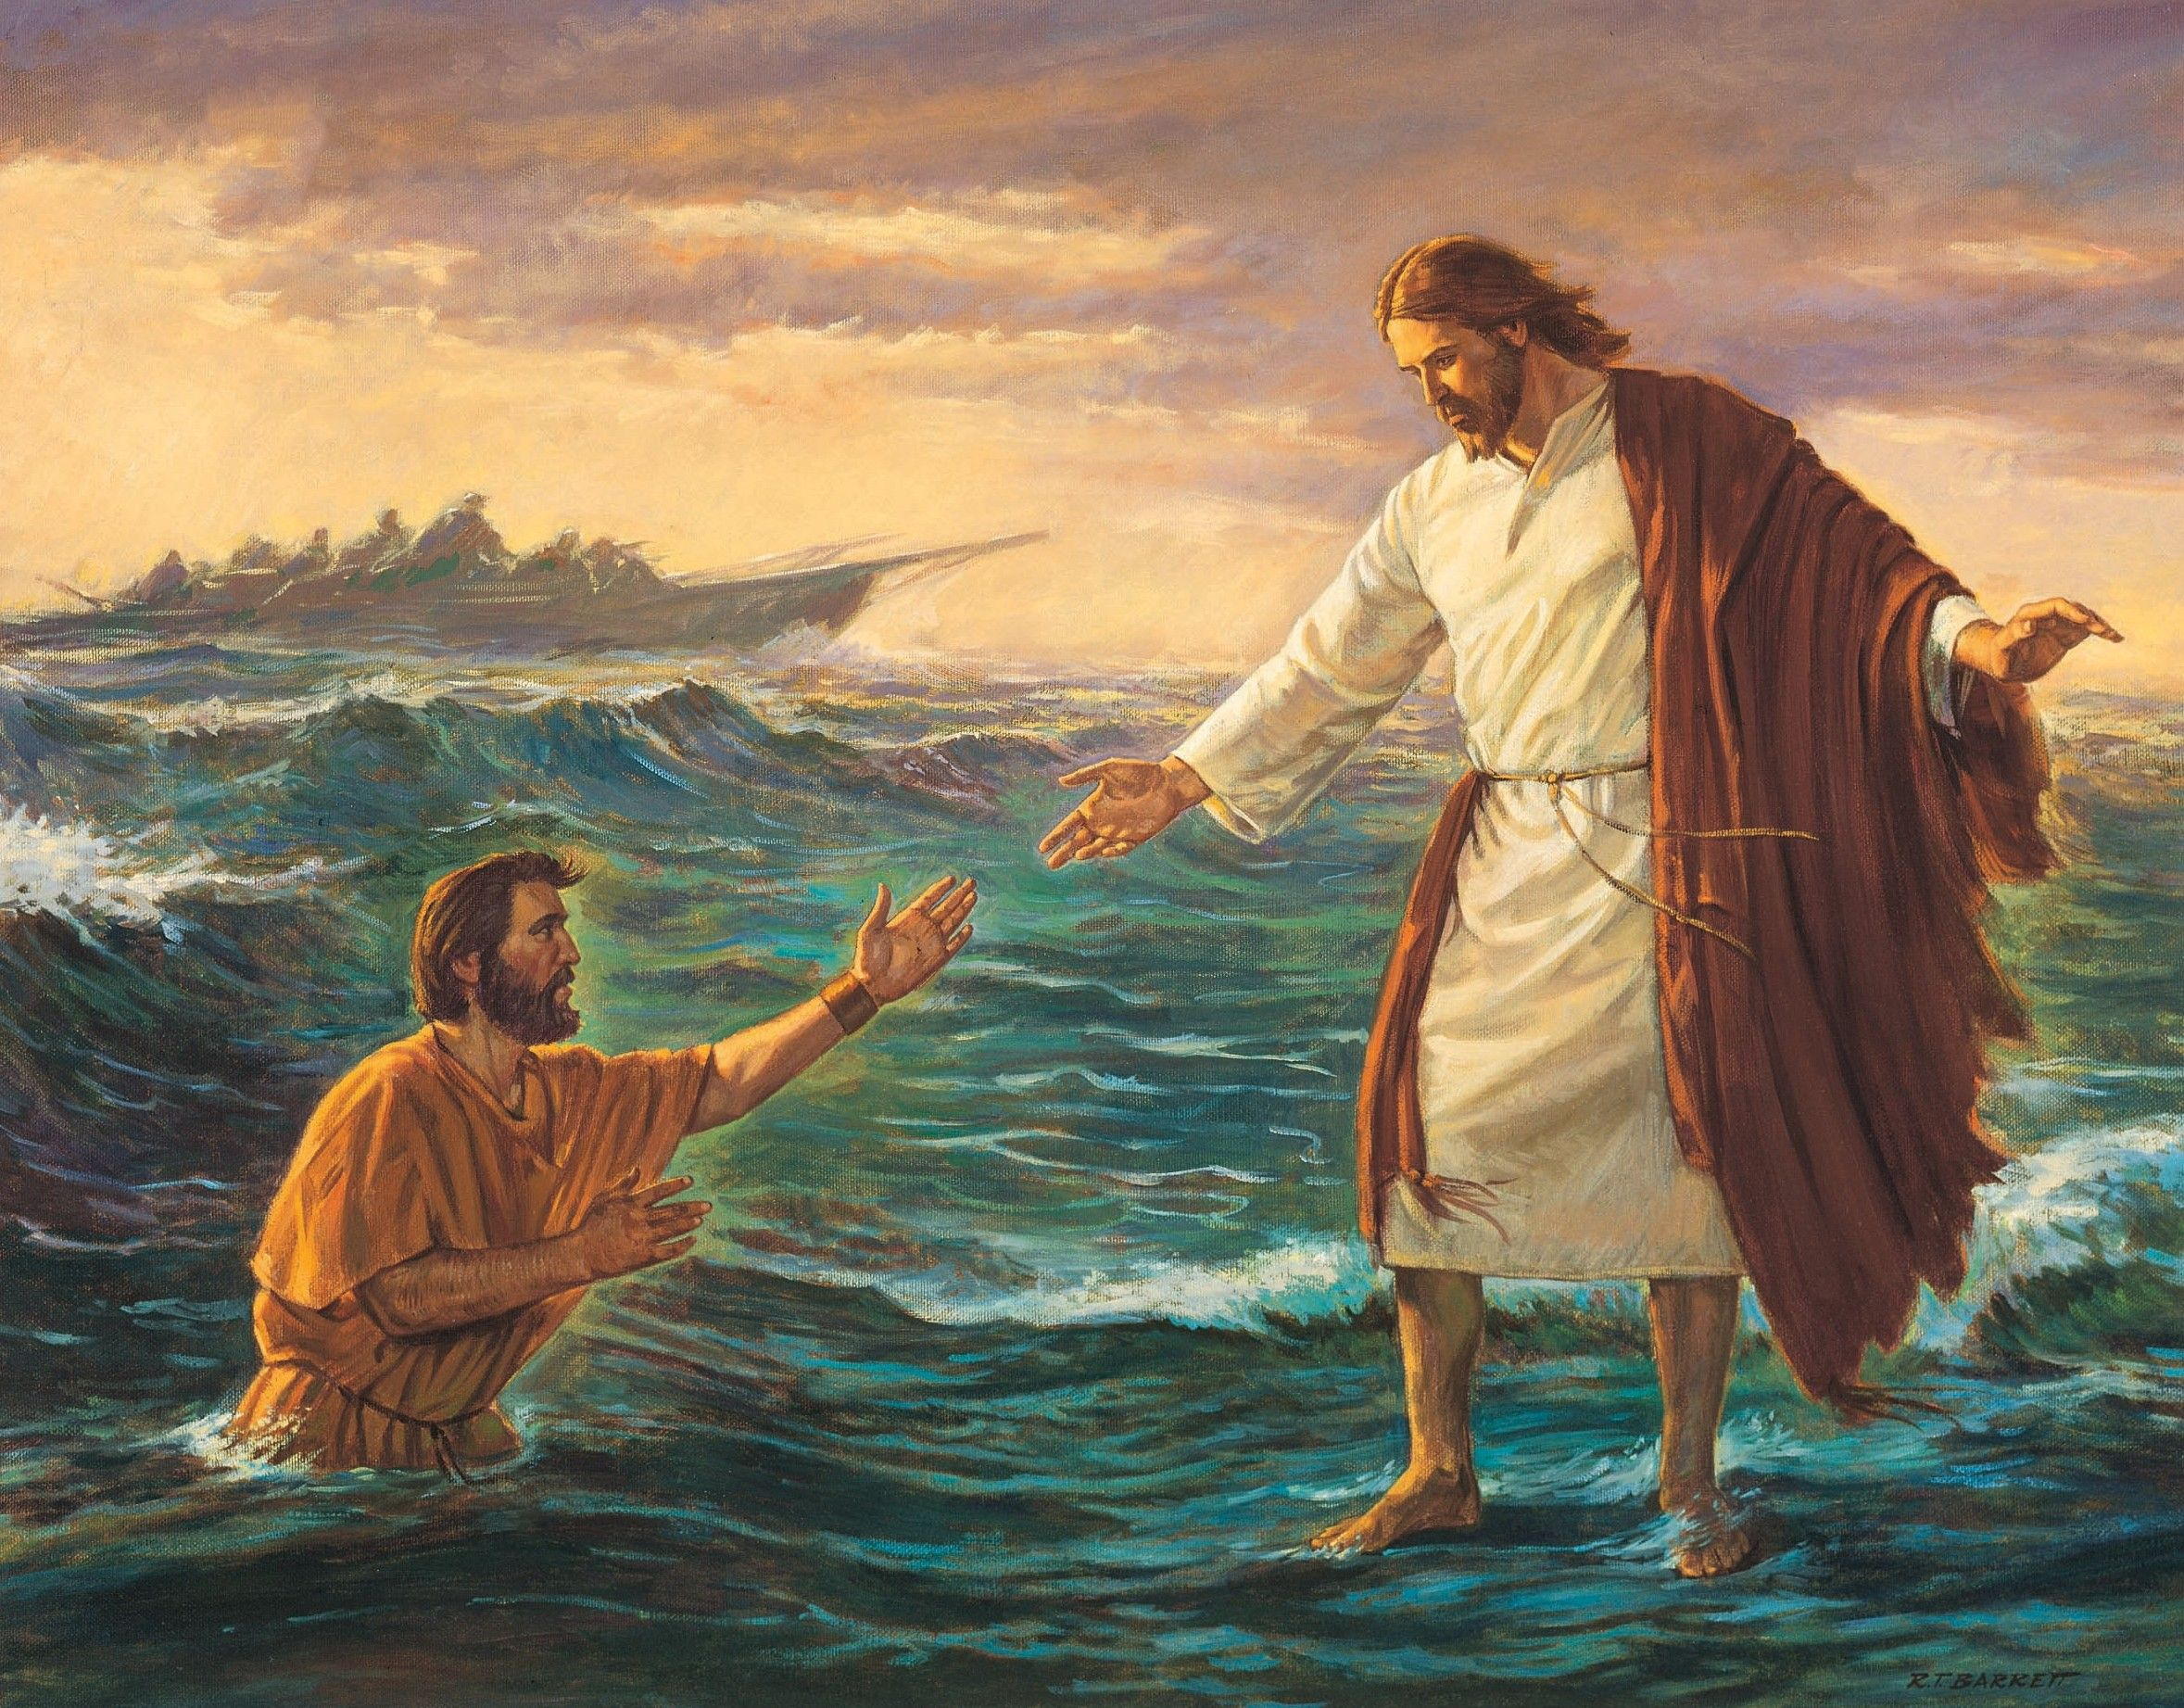 Christ Walking on the Water, by Robert T. Barrett; GAK 243; Primary manual 7-17; Matthew 14:22–33; Mark 6:45-51